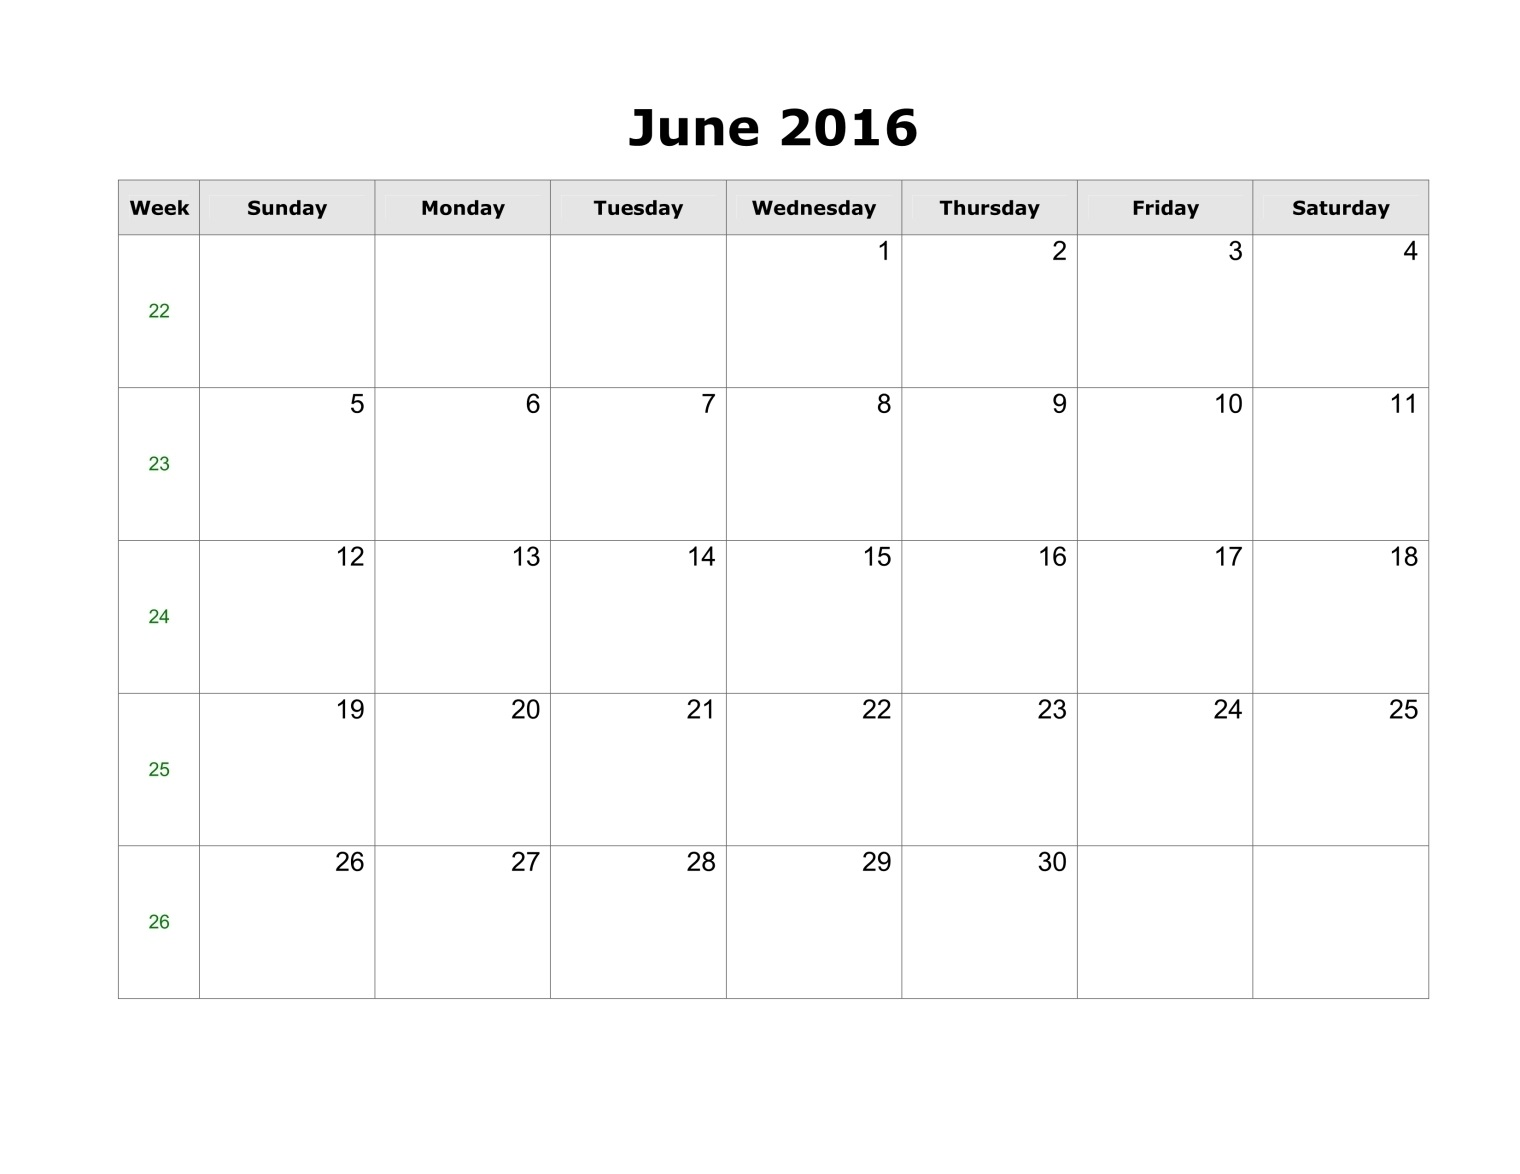 ... 2016 Calendar Templates A4, June 2016 Editable Templates Landscape